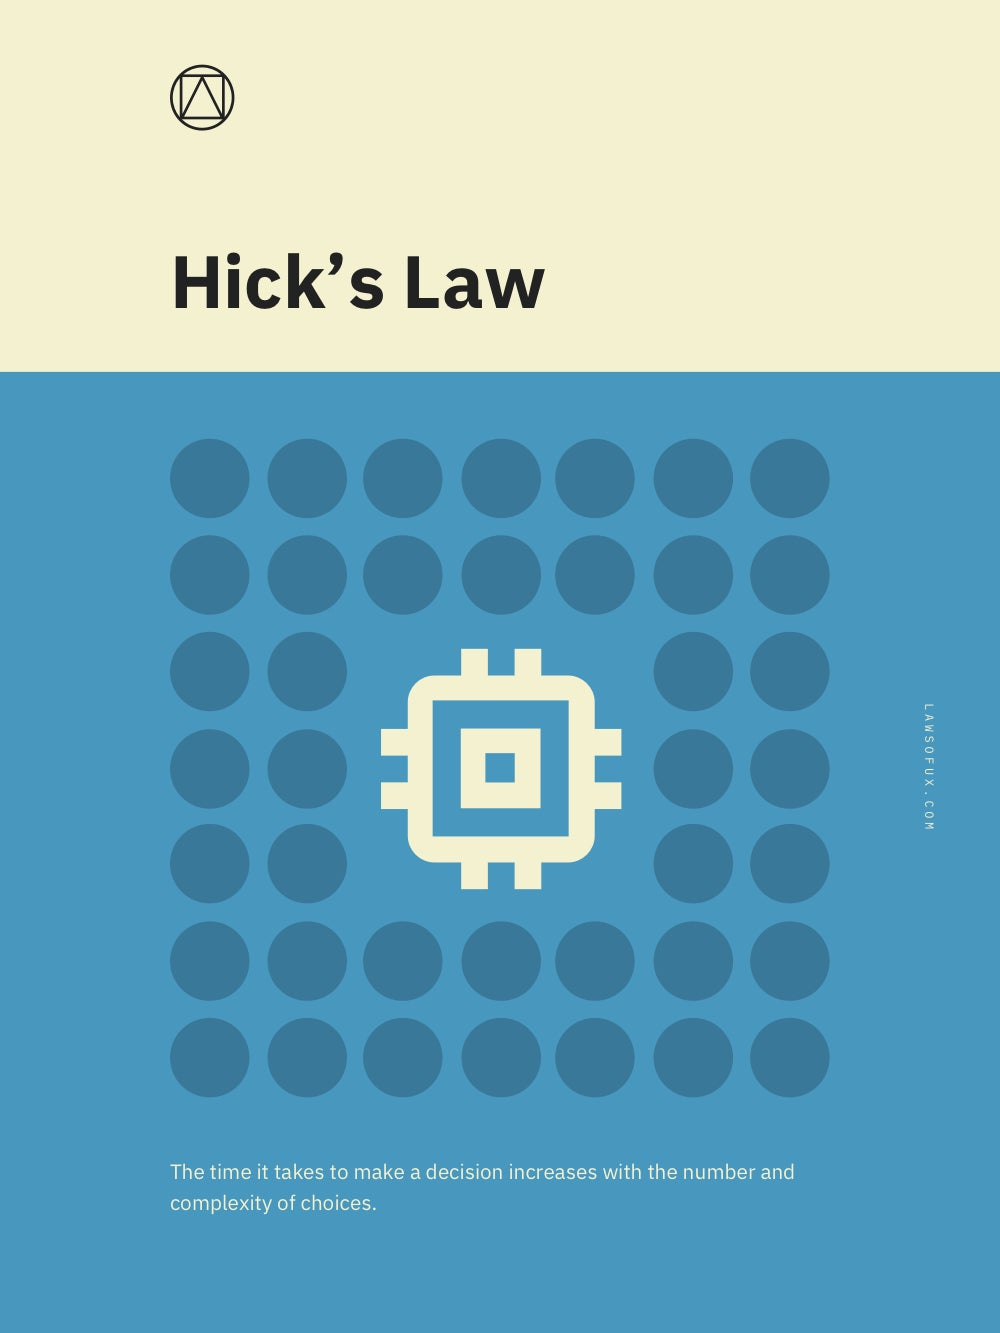 Hick's Law Poster